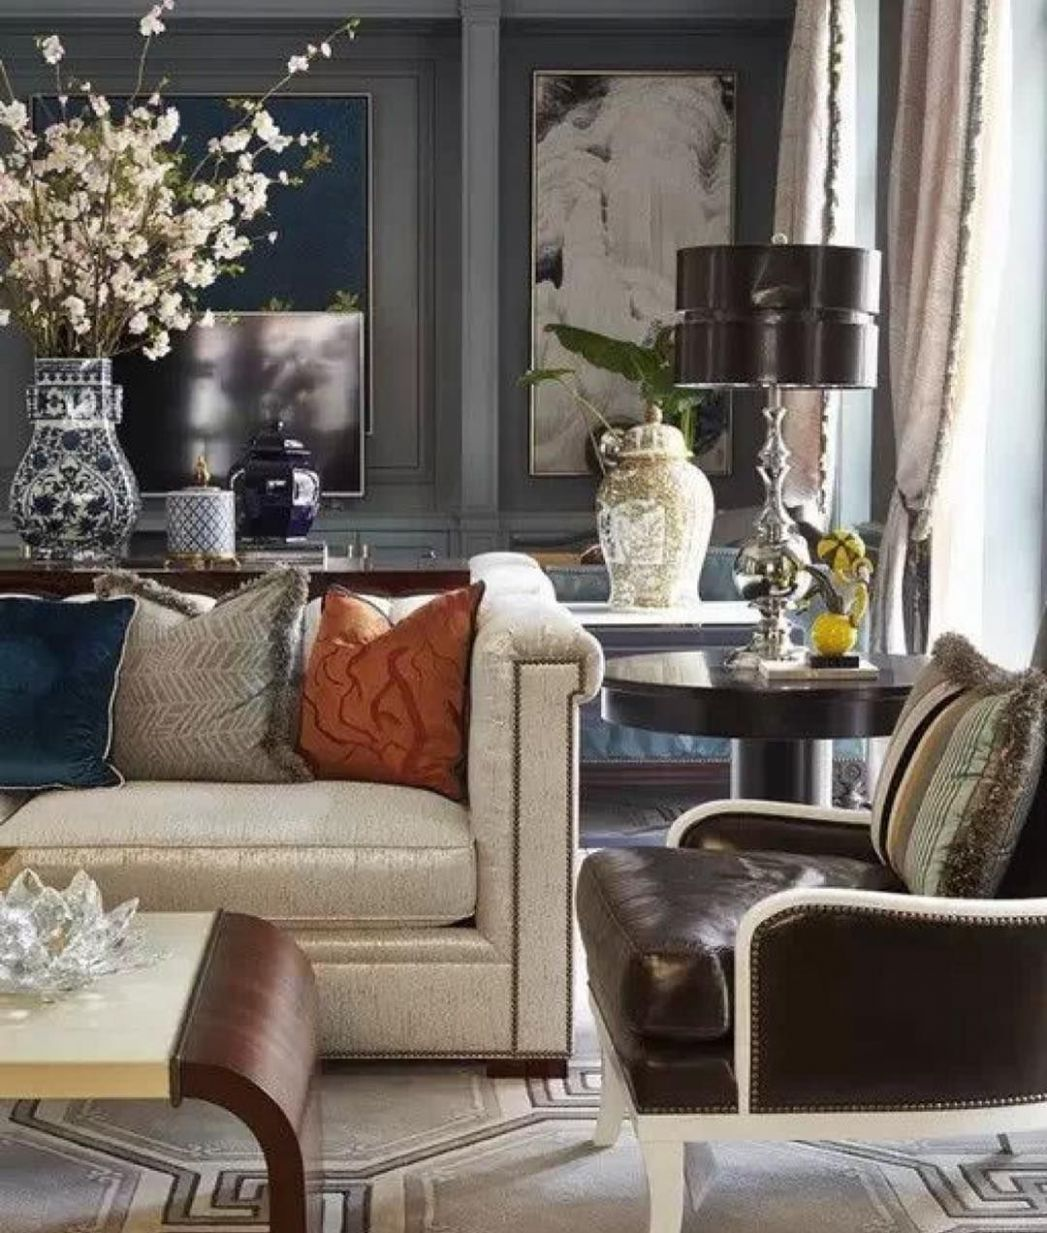 living_room #luxury #decoracion #design #decor #usa #ksa ...